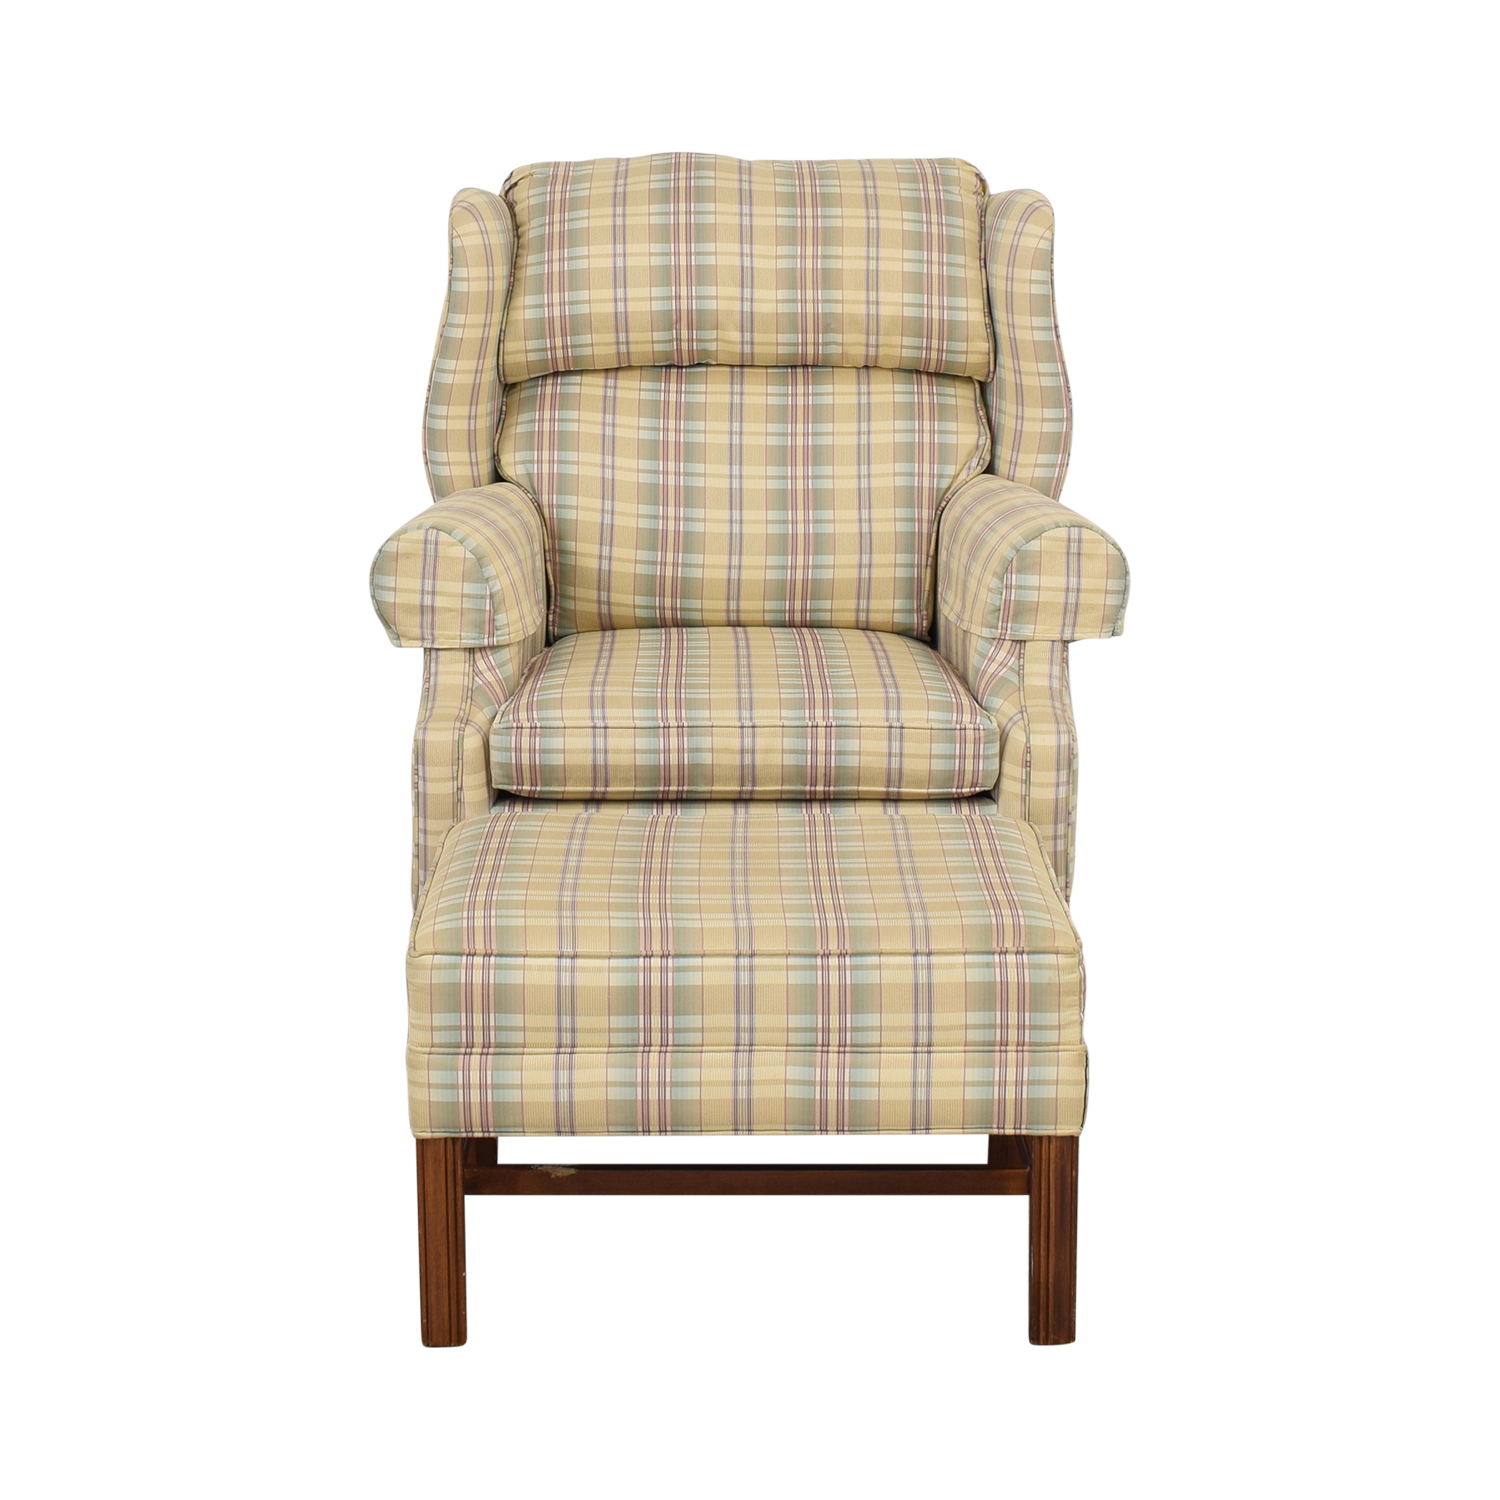 shop Ethan Allen Plaid Wingback Chair and Ottoman Ethan Allen